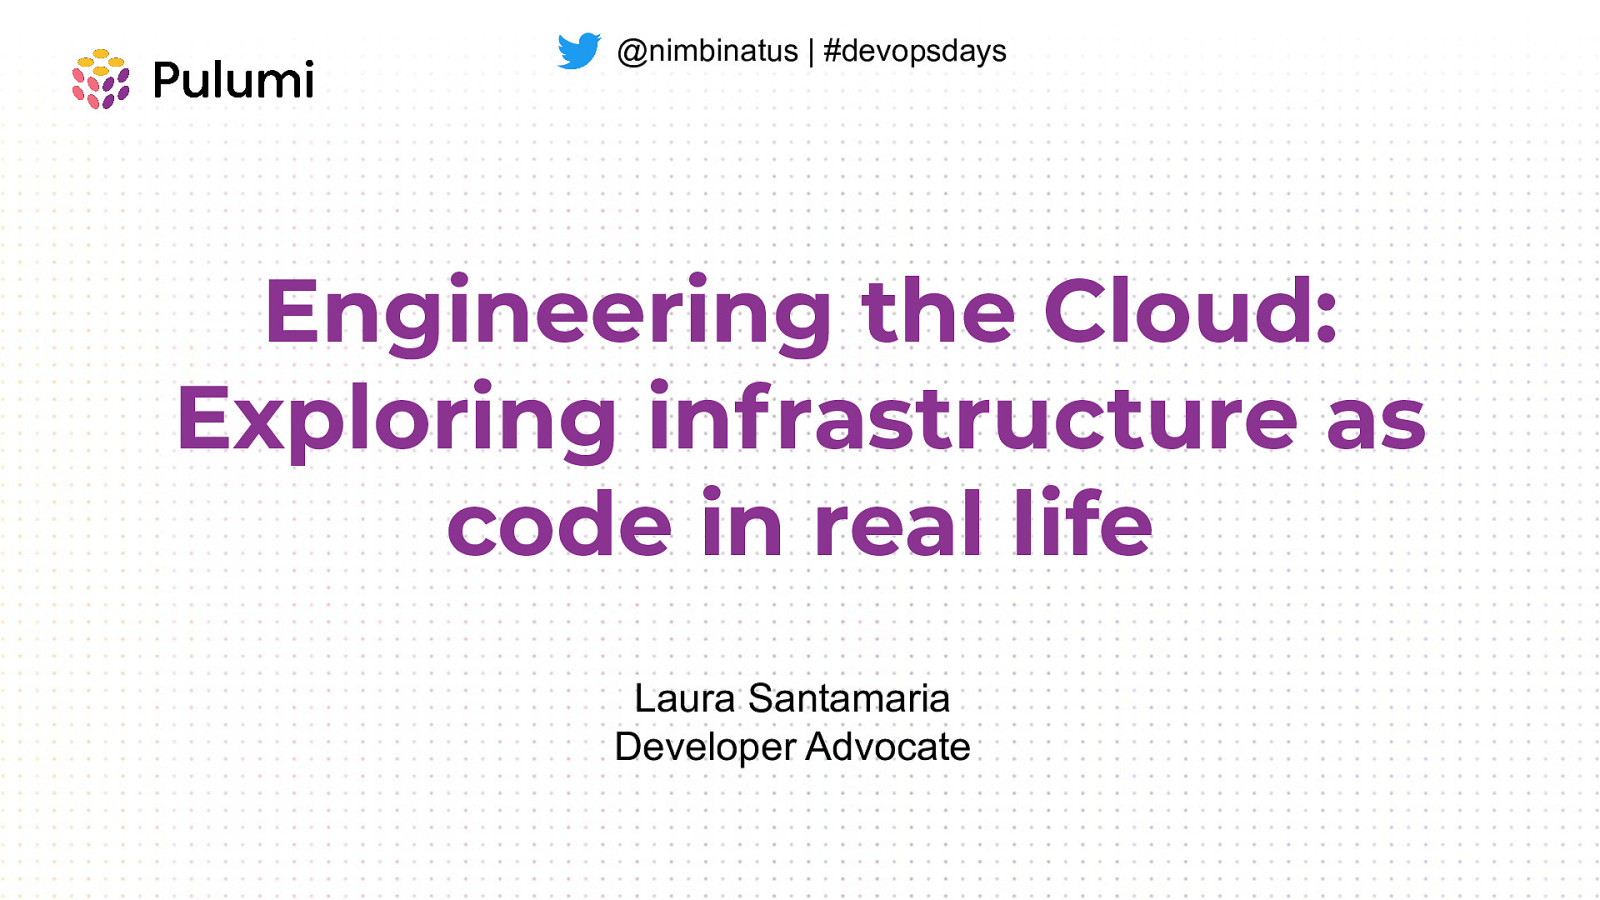 Engineering the Cloud: Exploring infrastructure as code in real life